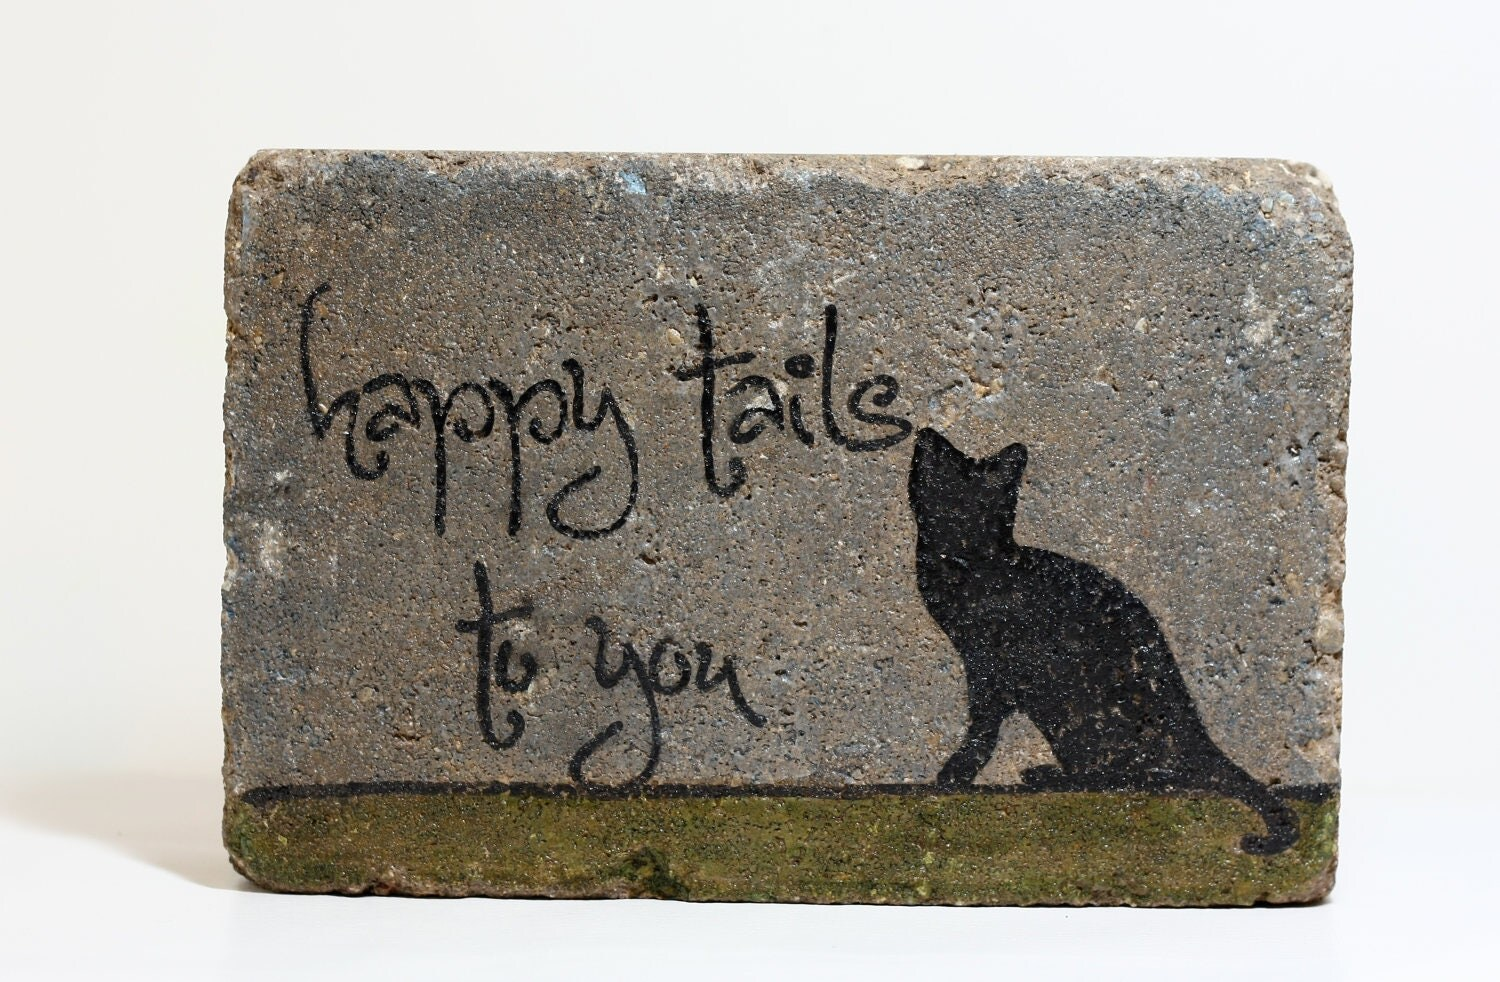 Happy tails to you rustic garden cat decor outdoor sign quote for Outdoor decorative signs